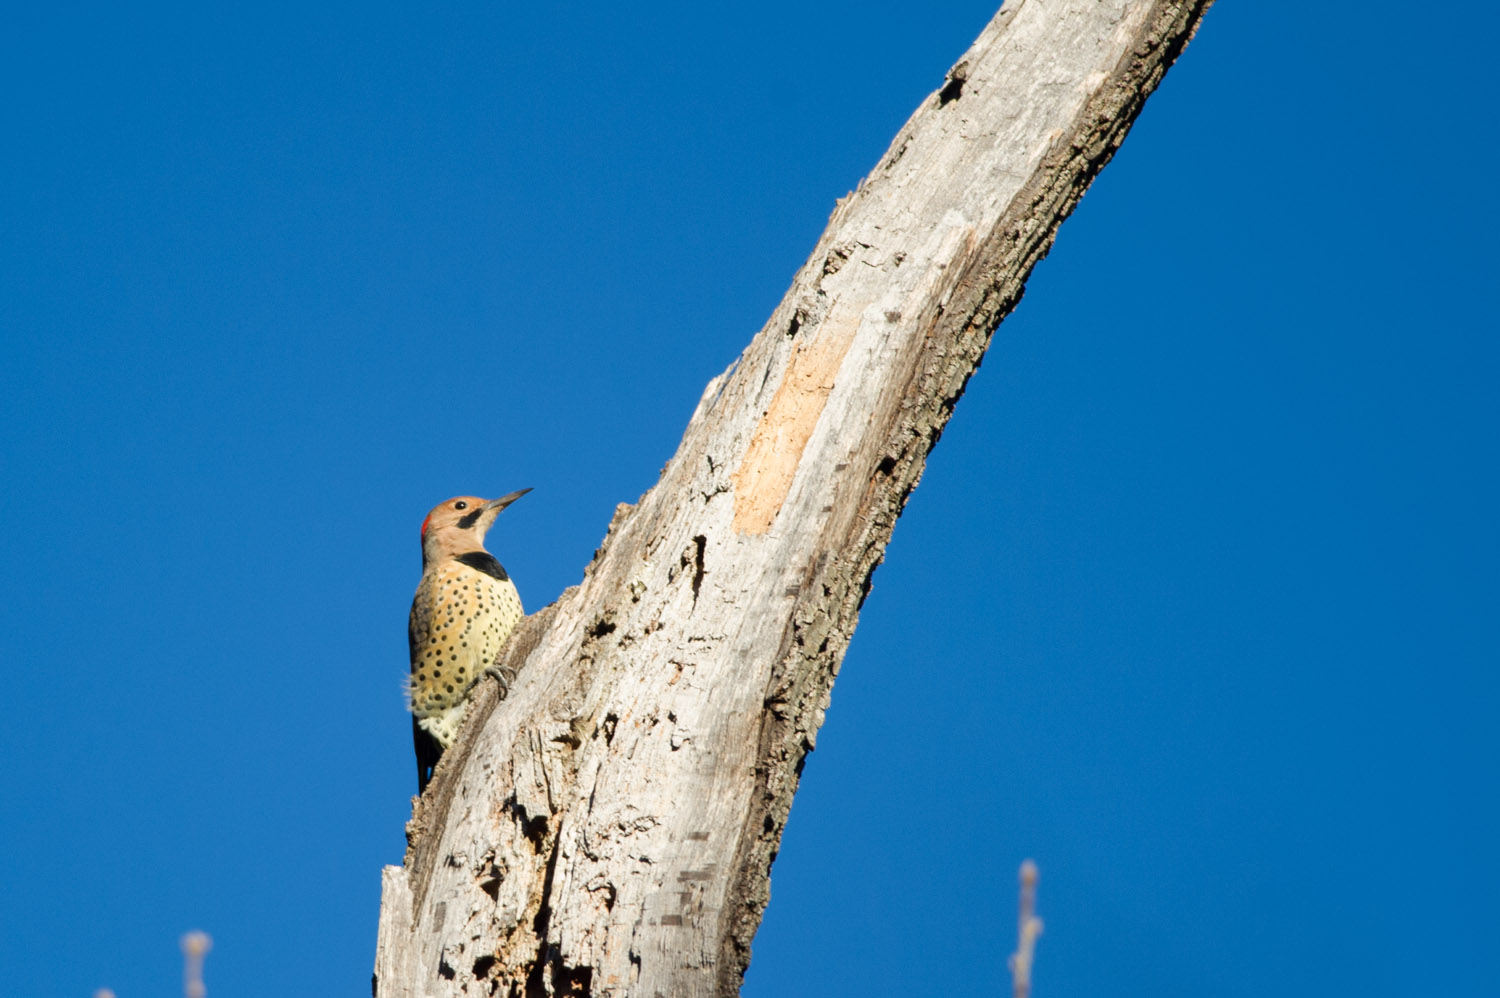 A Northern Flicker in search of food on the top of this dead tree.